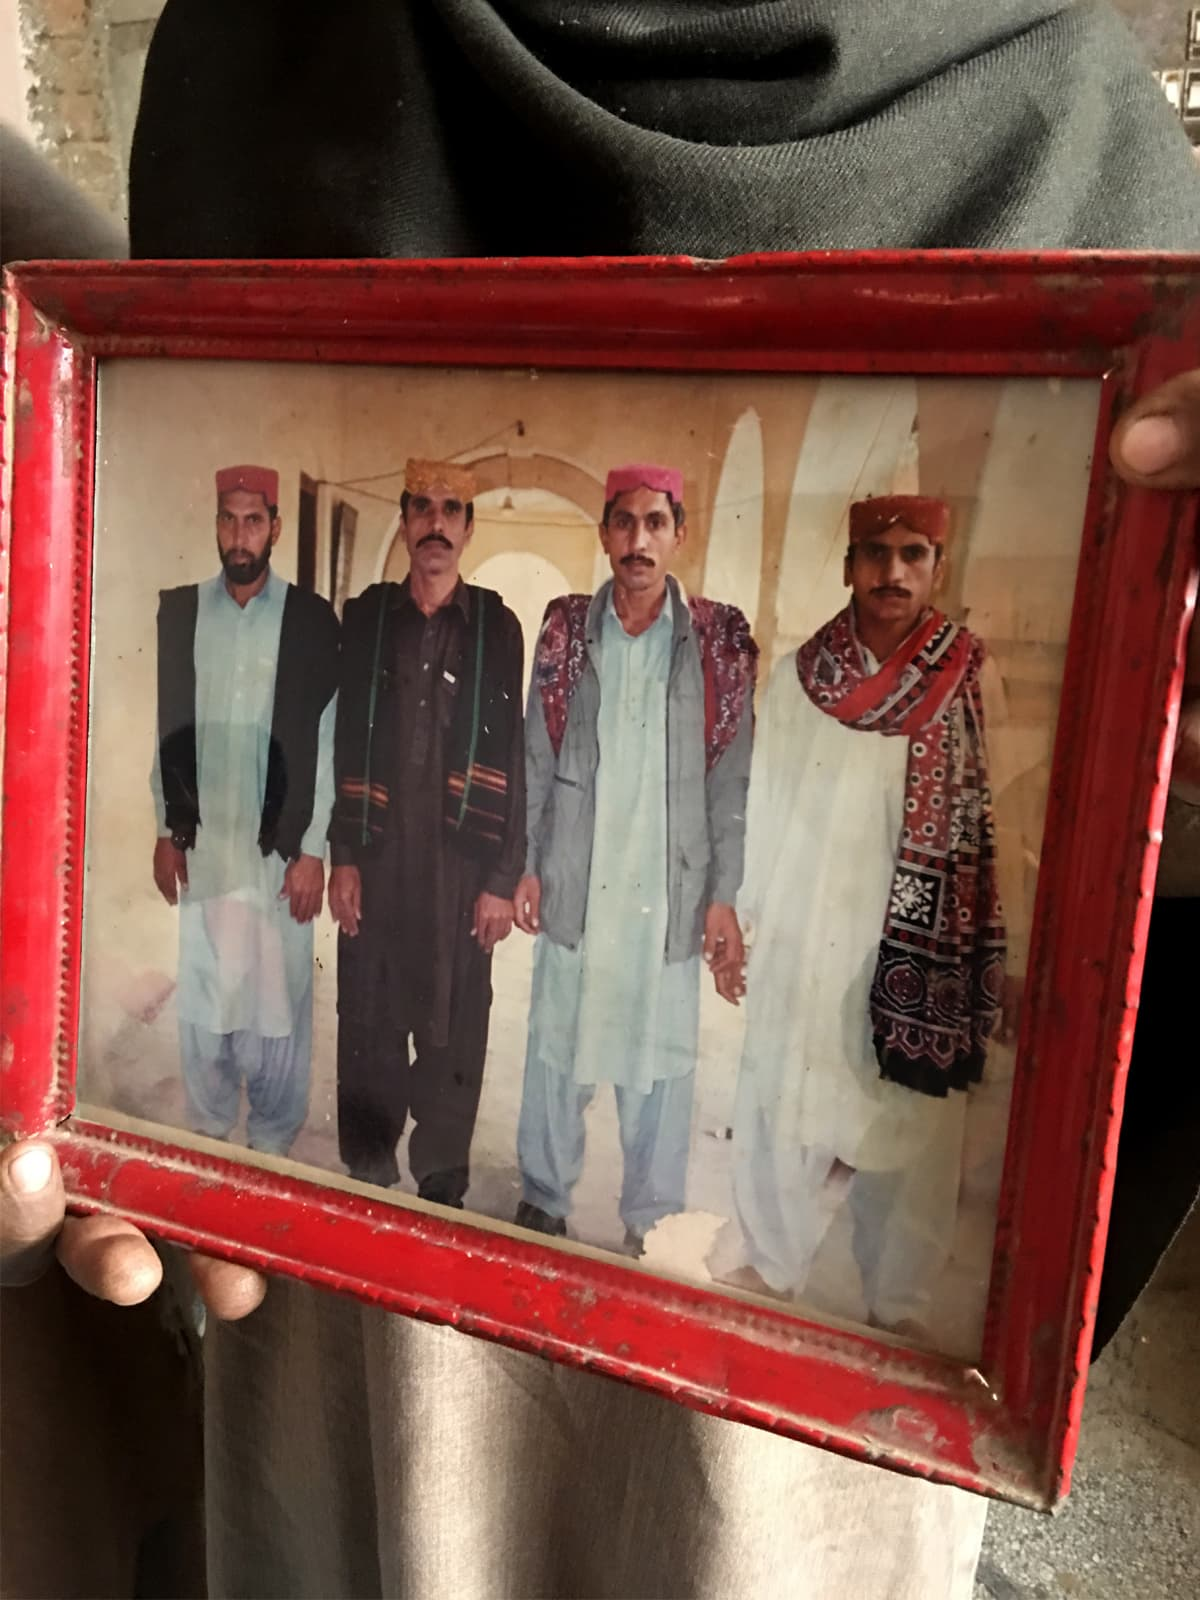 Left to right: Ghulam Farid, Ghulam Qadir, Ghulam Sarwar and Ghulam Ghaus | Subuk Hasnain